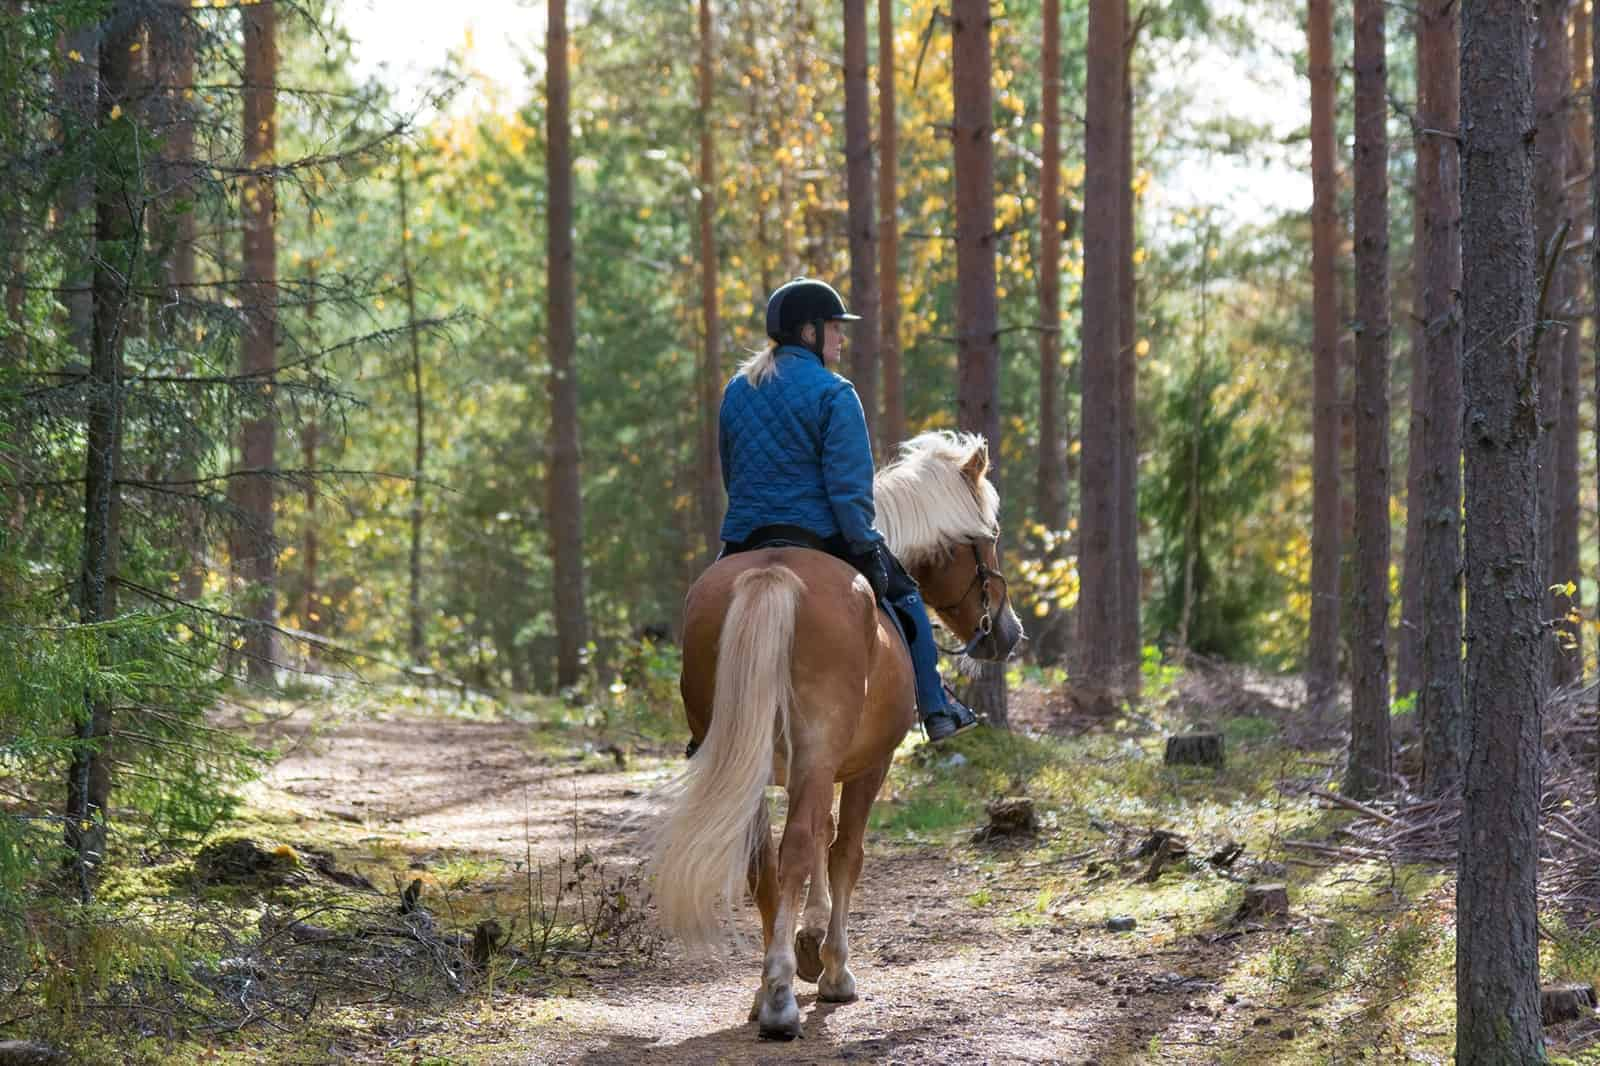 Be a Good Steward of Public Land: 10 Tips for Equestrian Trail Riders